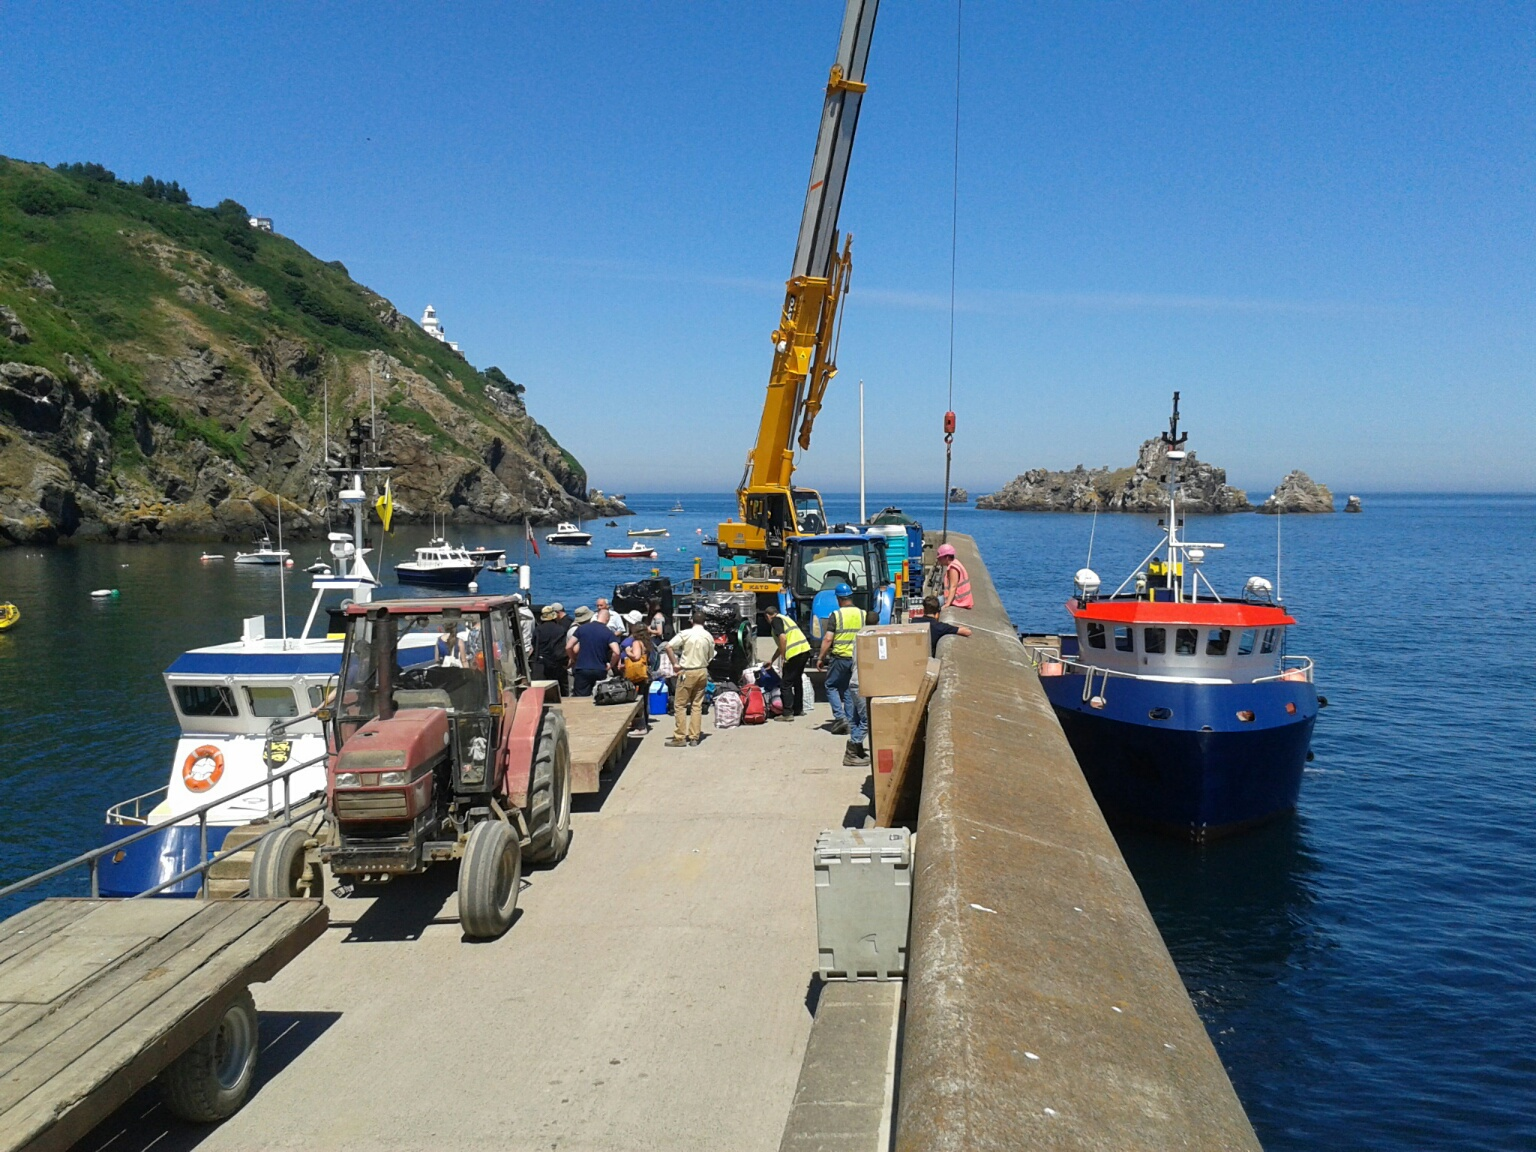 Island Of Sark Tourism In August